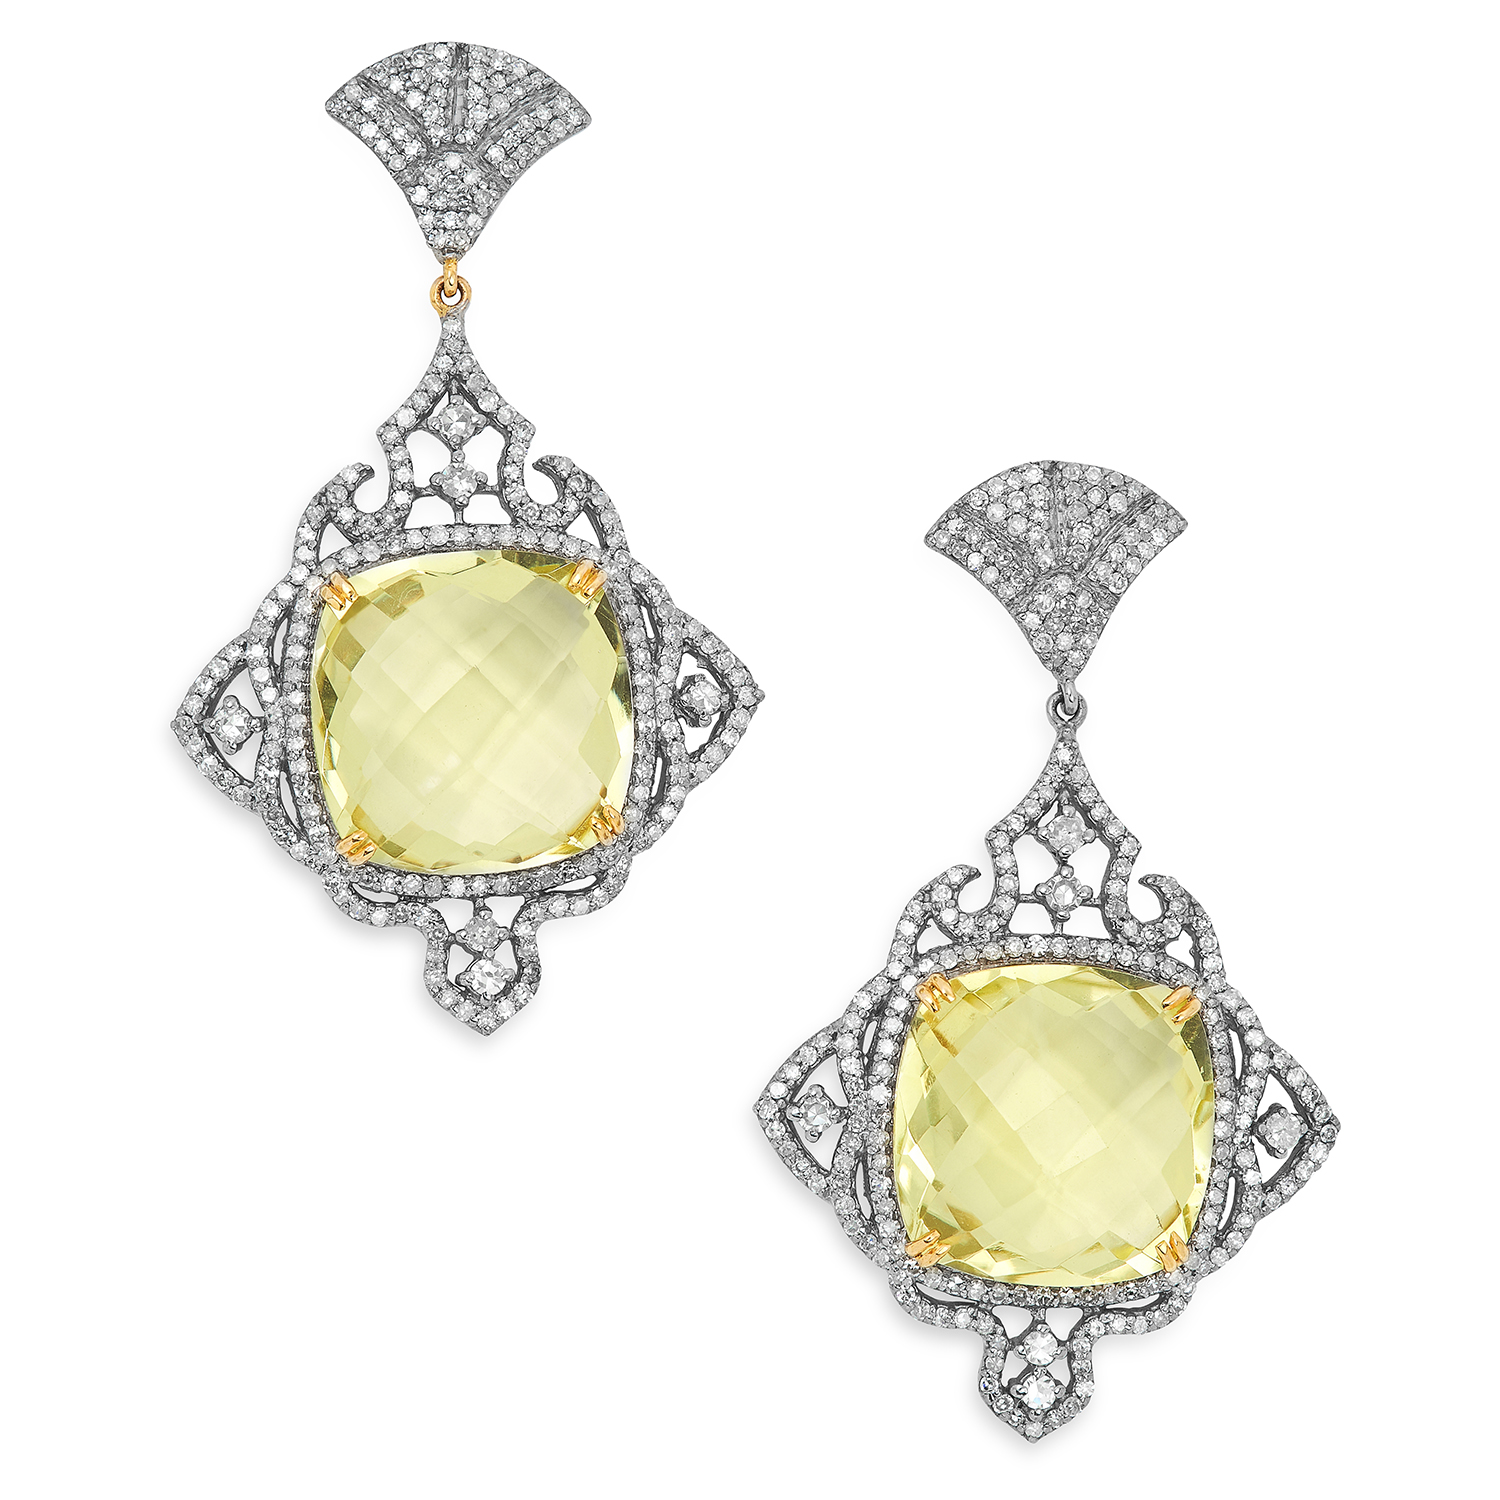 LEMON QUARTS AND DIAMOND EARRINGS each set with a faceted lemon quartz in a border of round cut